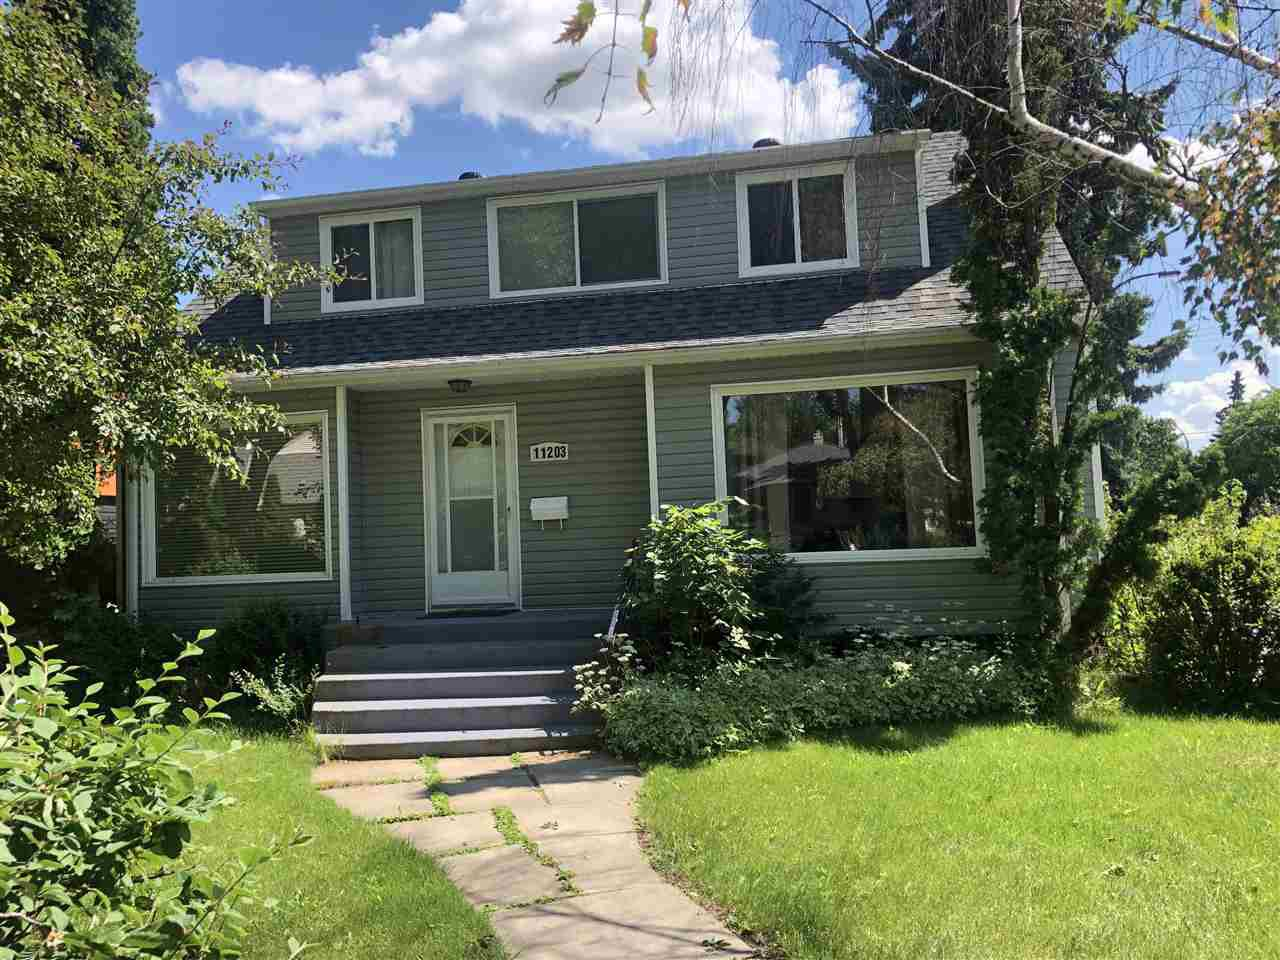 Main Photo: 11203 56 Street NW in Edmonton: Zone 09 House for sale : MLS®# E4205004